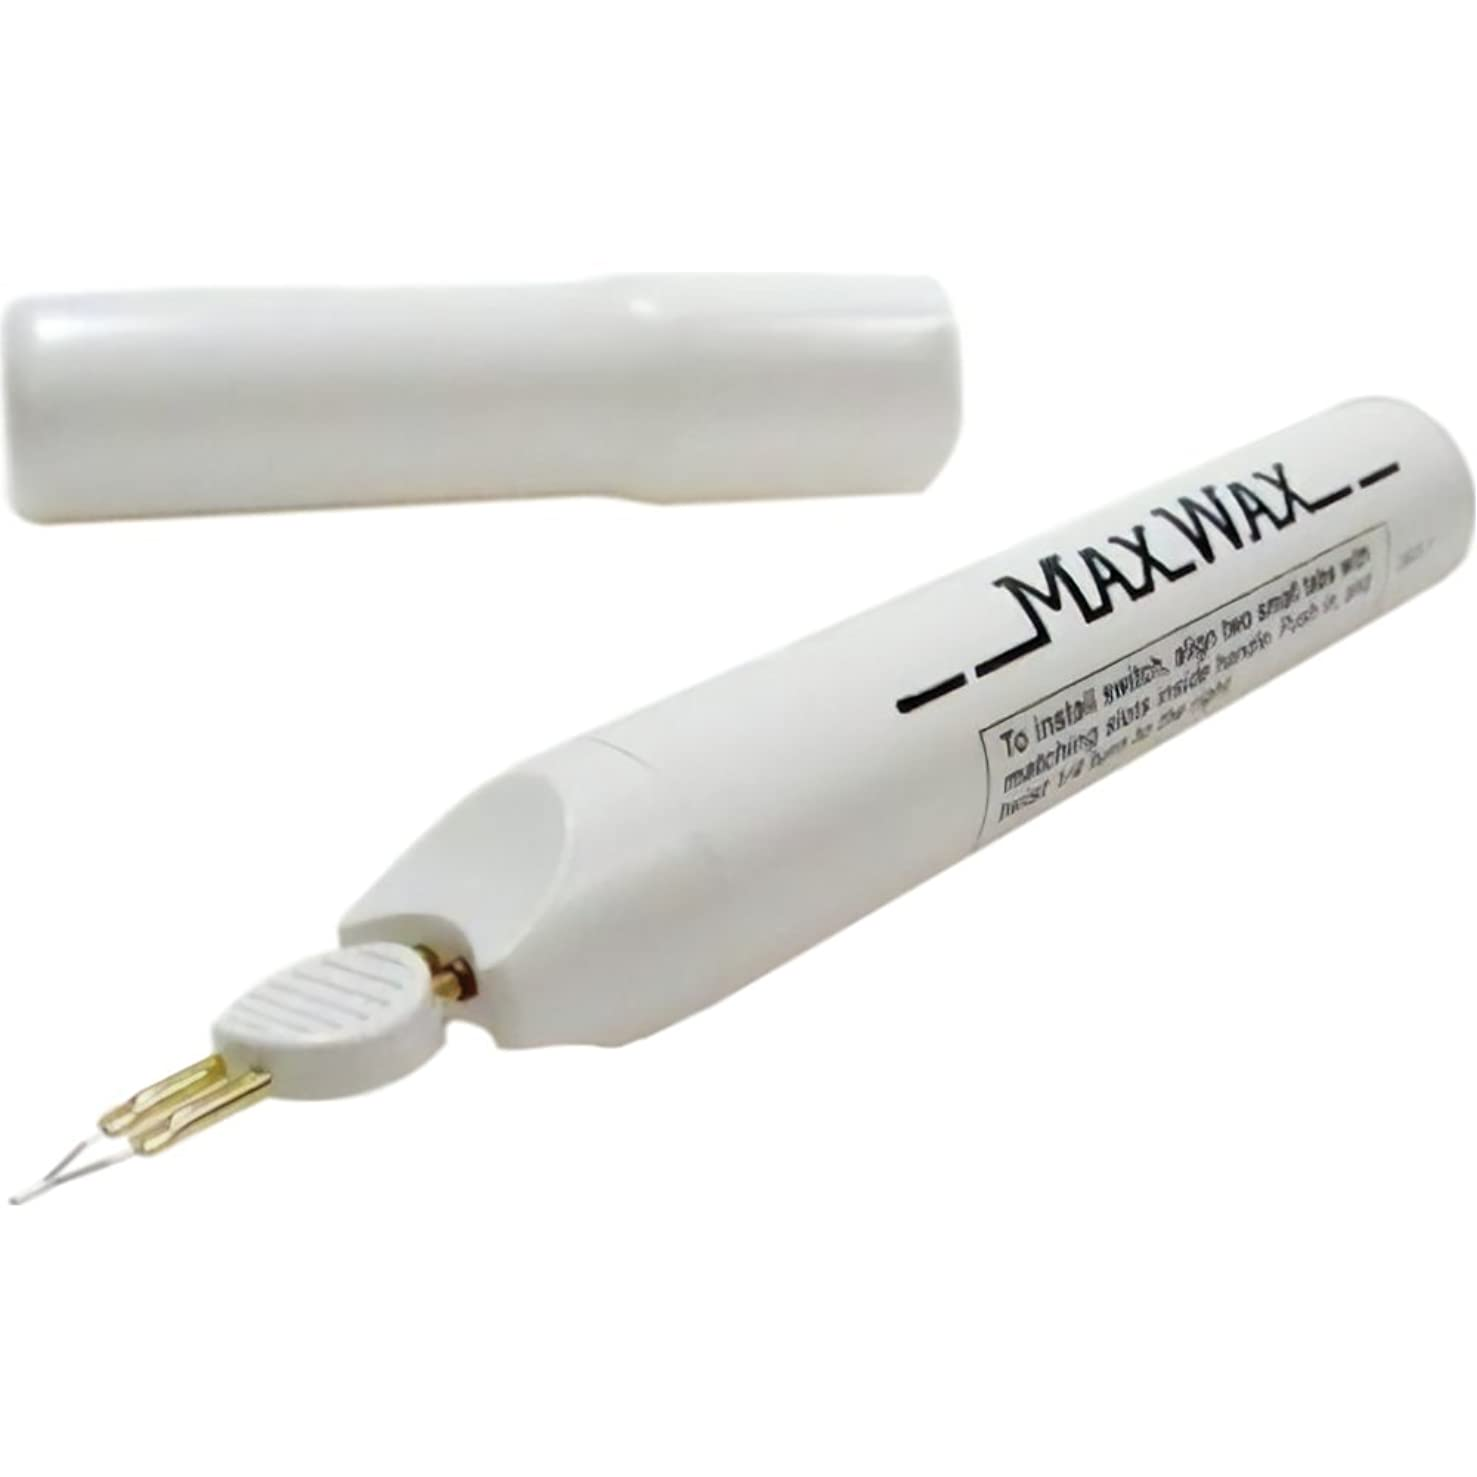 WAX Carving PEN Super Max Instant 850F Tool